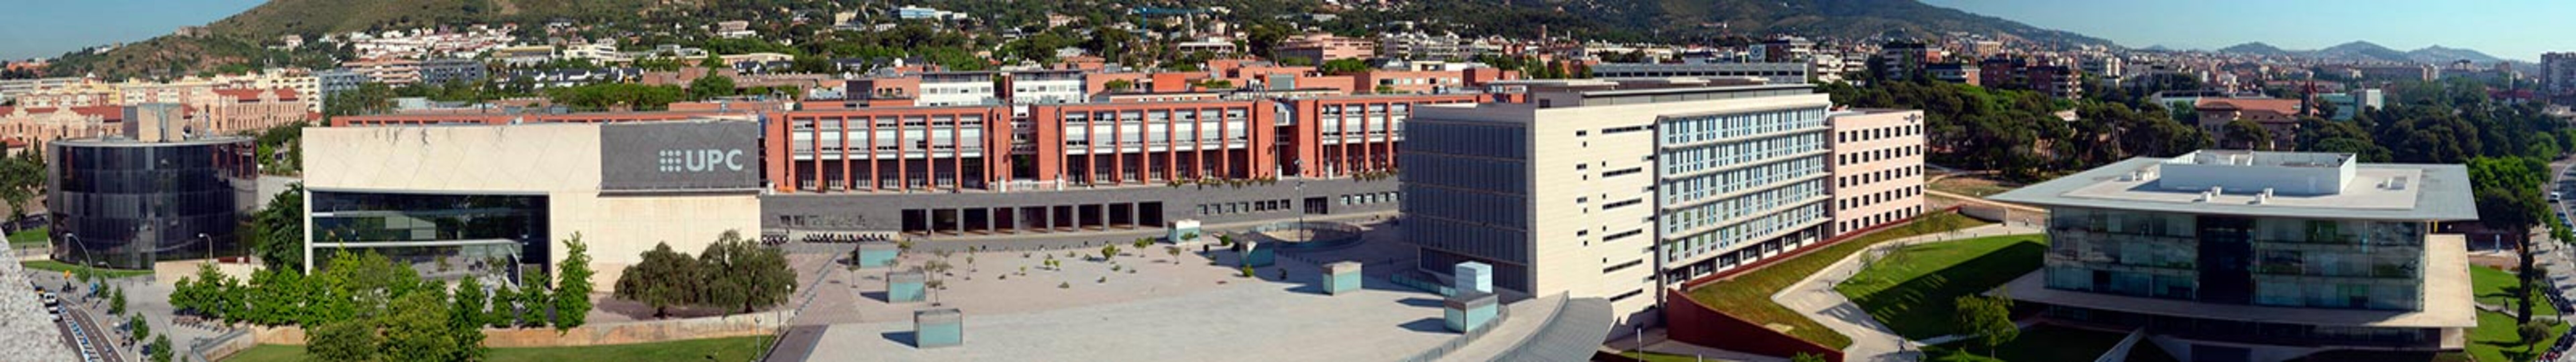 UPC-Barcelona Tech Campus Nord